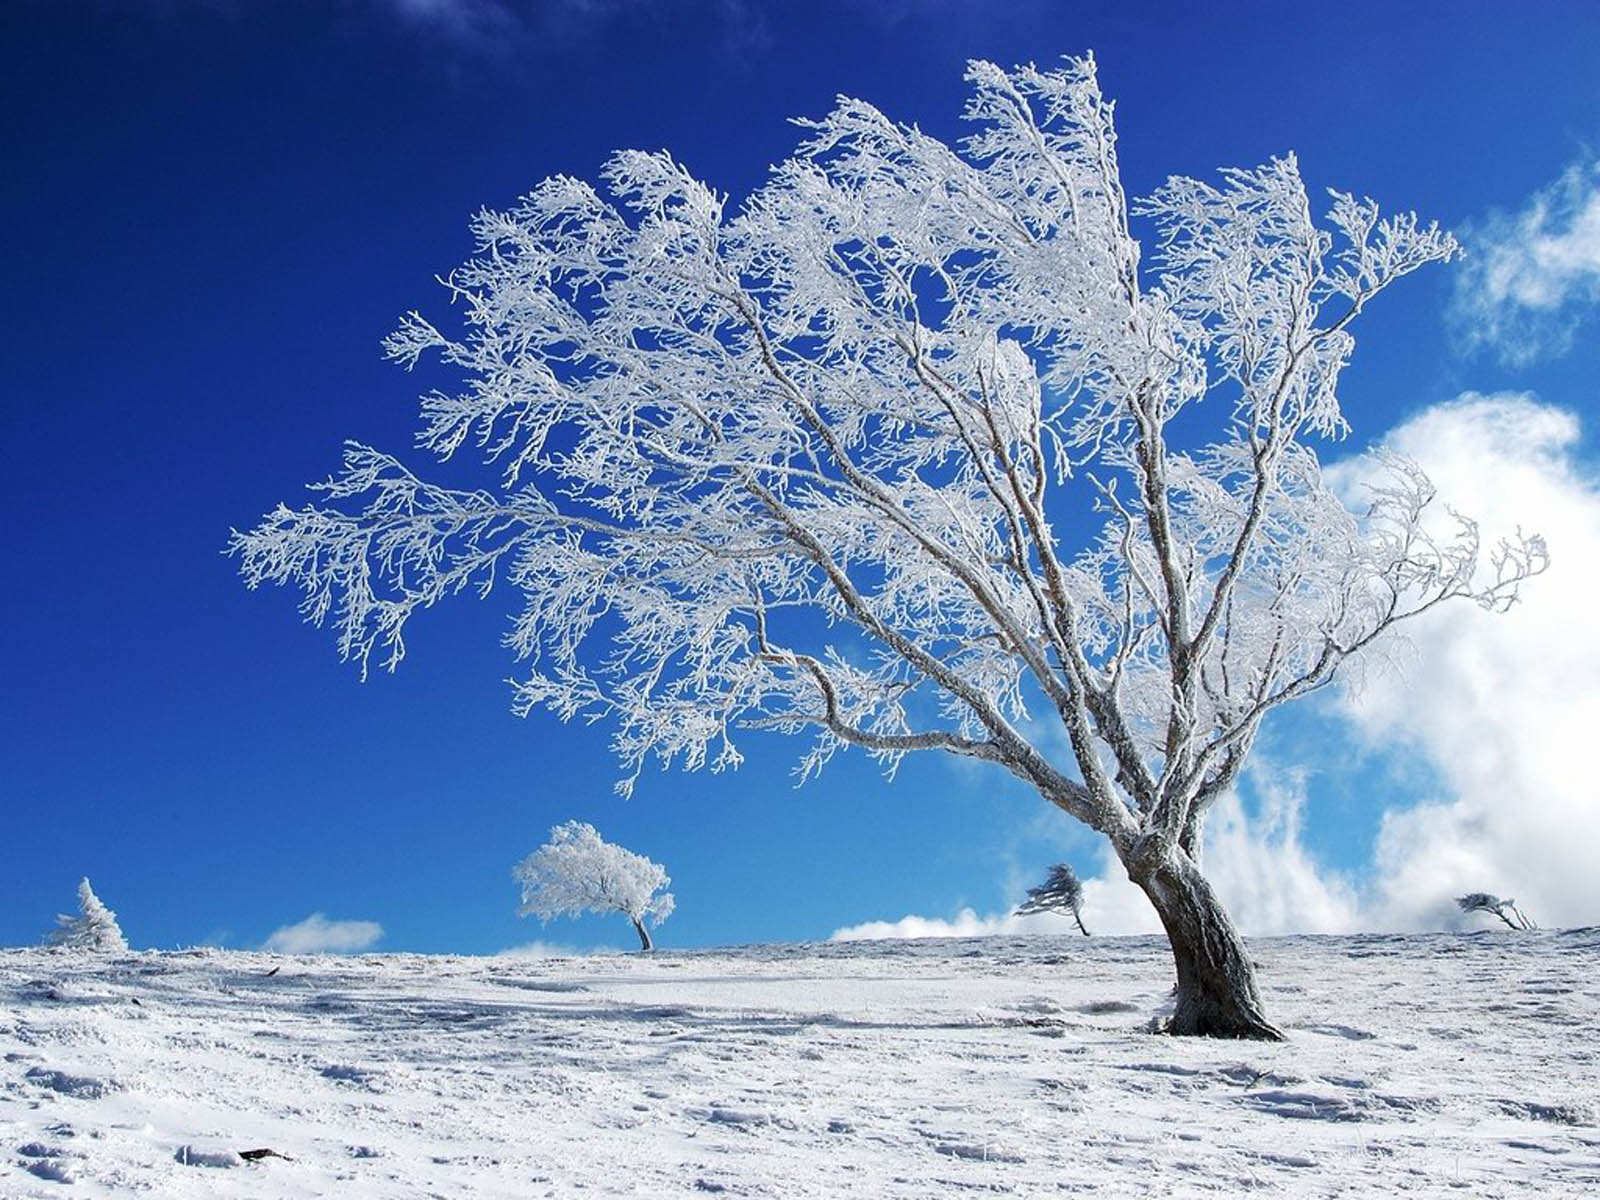 Winter Wallpaper Computer tag winter desktop wallpapers backgrounds paos pictures and images for